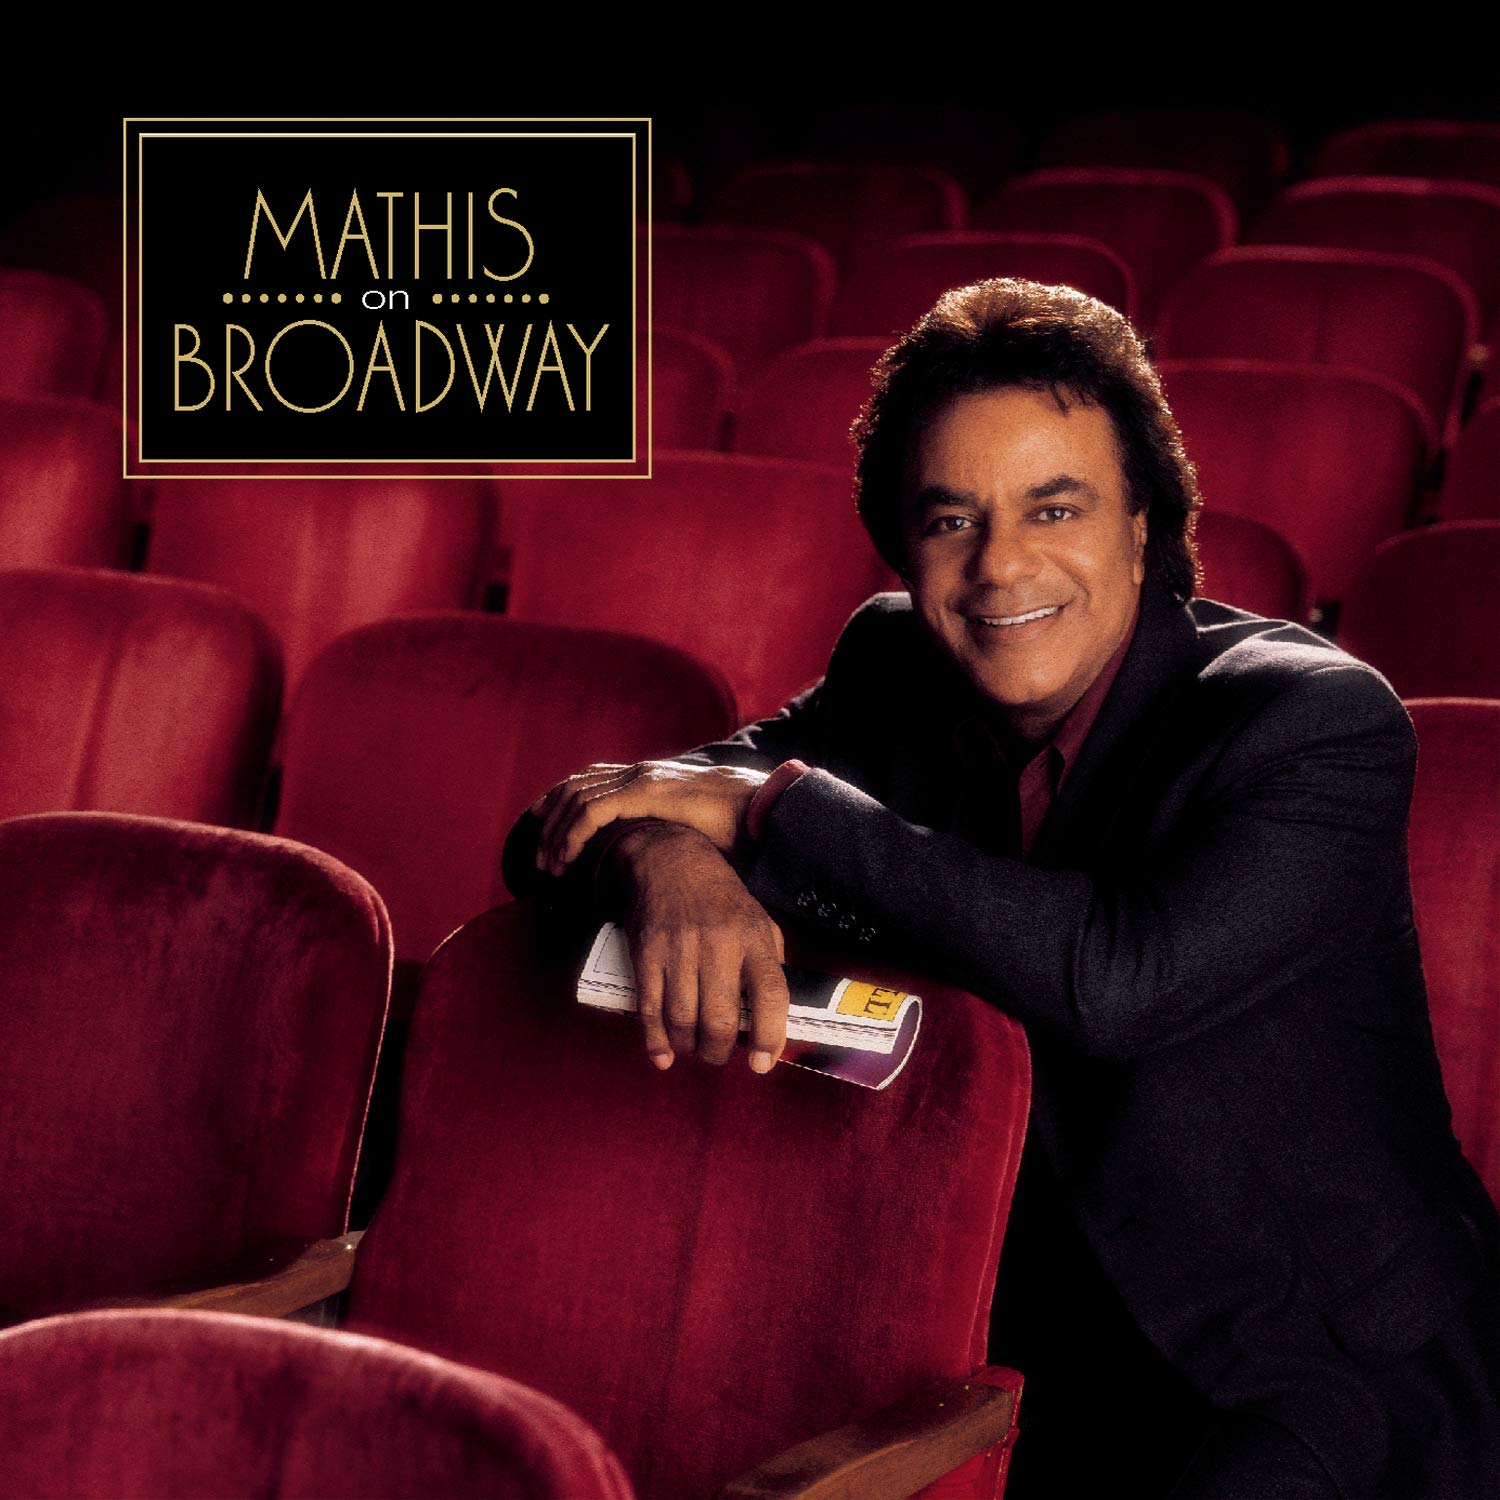 Super Special SALE held 5 ☆ very popular Mathis On Broadway